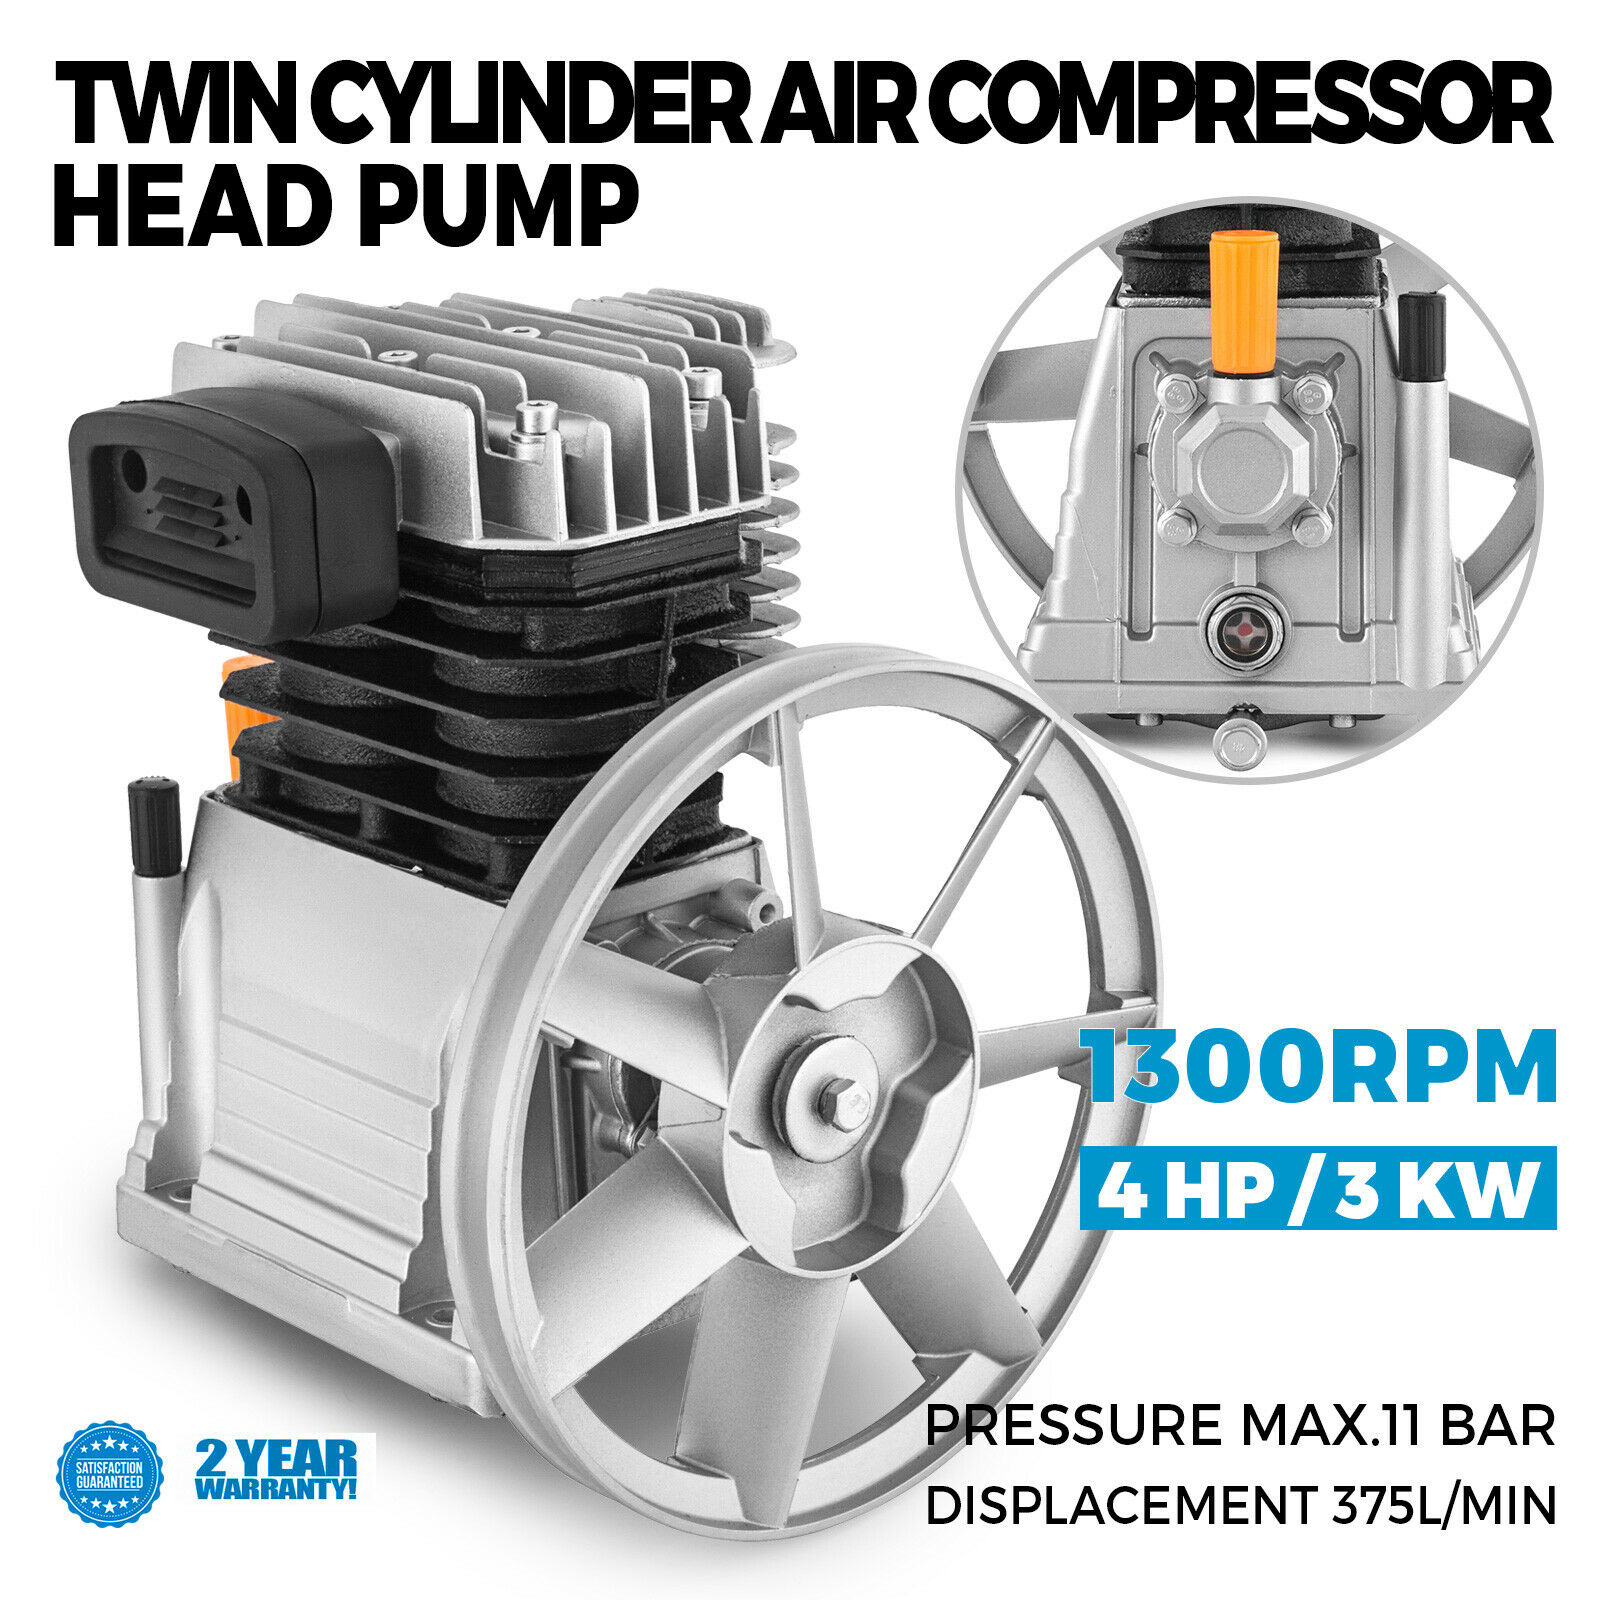 Air Compressor Head Pump 375L 3KW Piston Type Double Cylinder Pump Head 1300rpm 1 Stage 11 Bar Head Construction